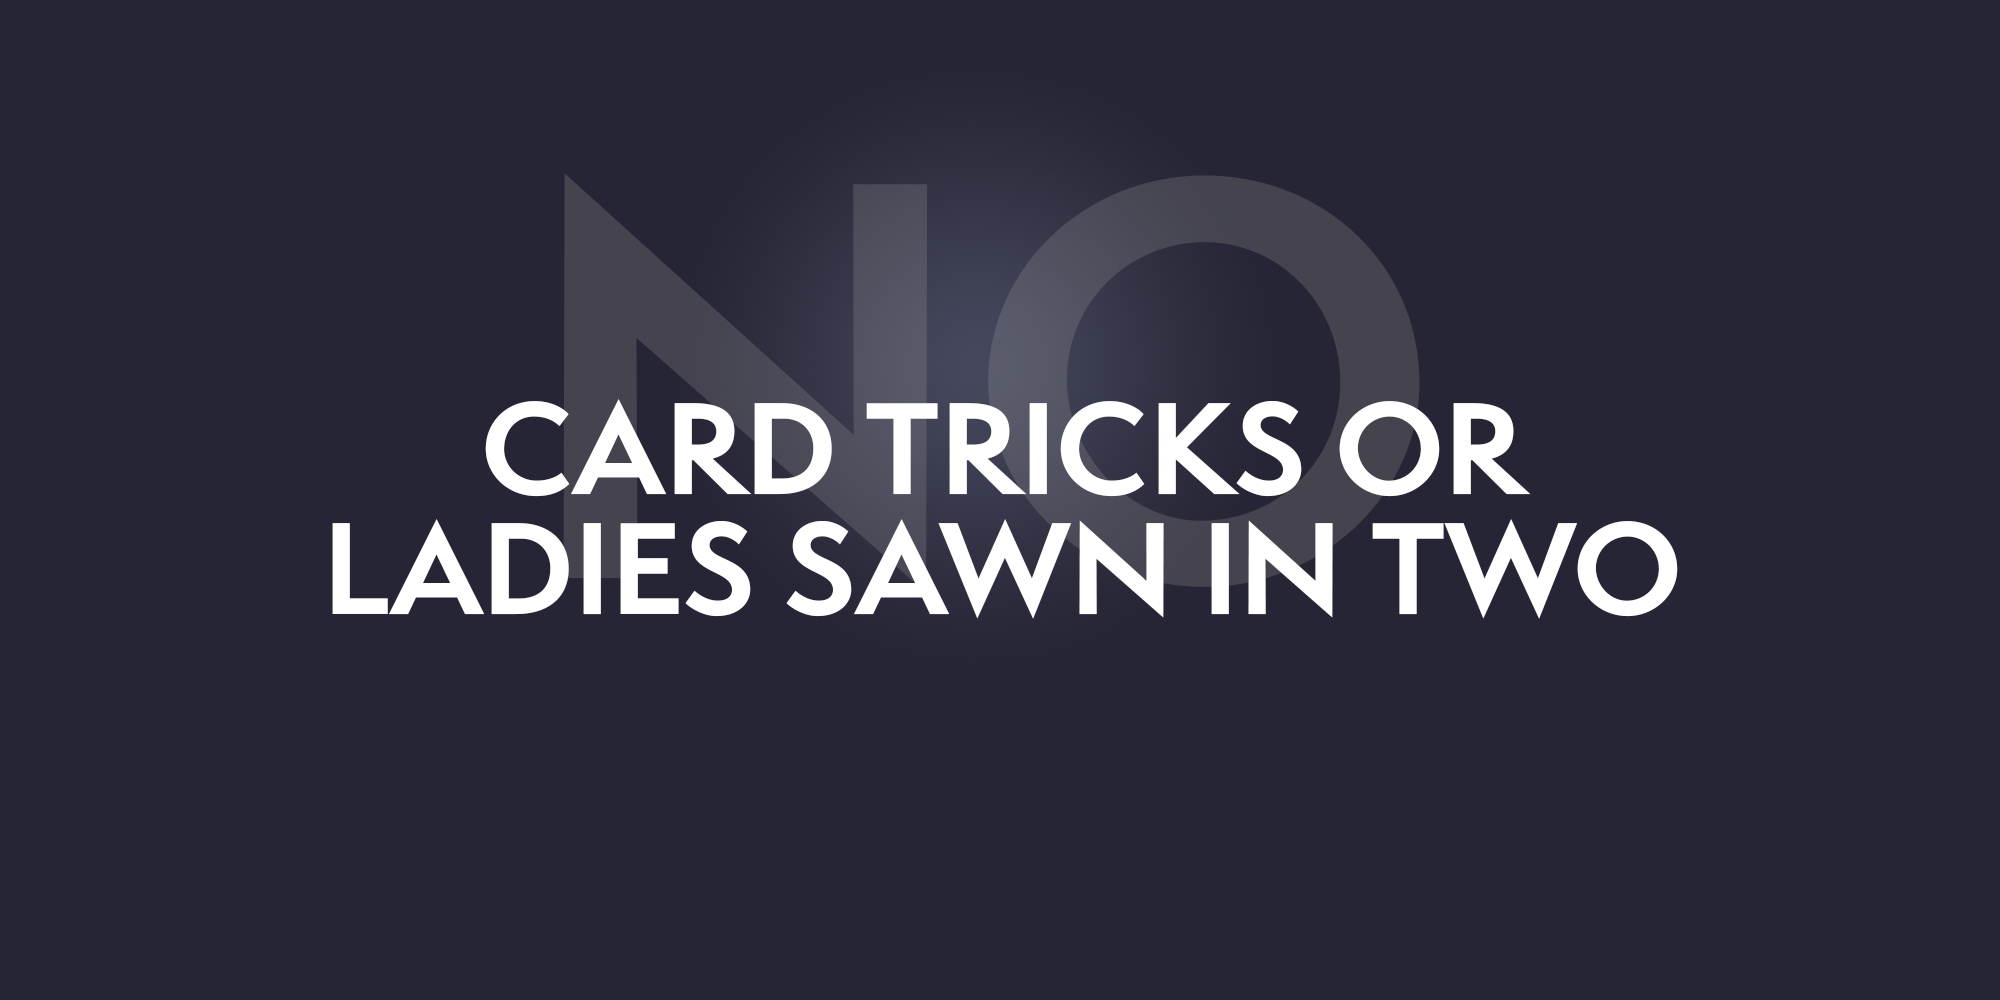 No Card Tricks image